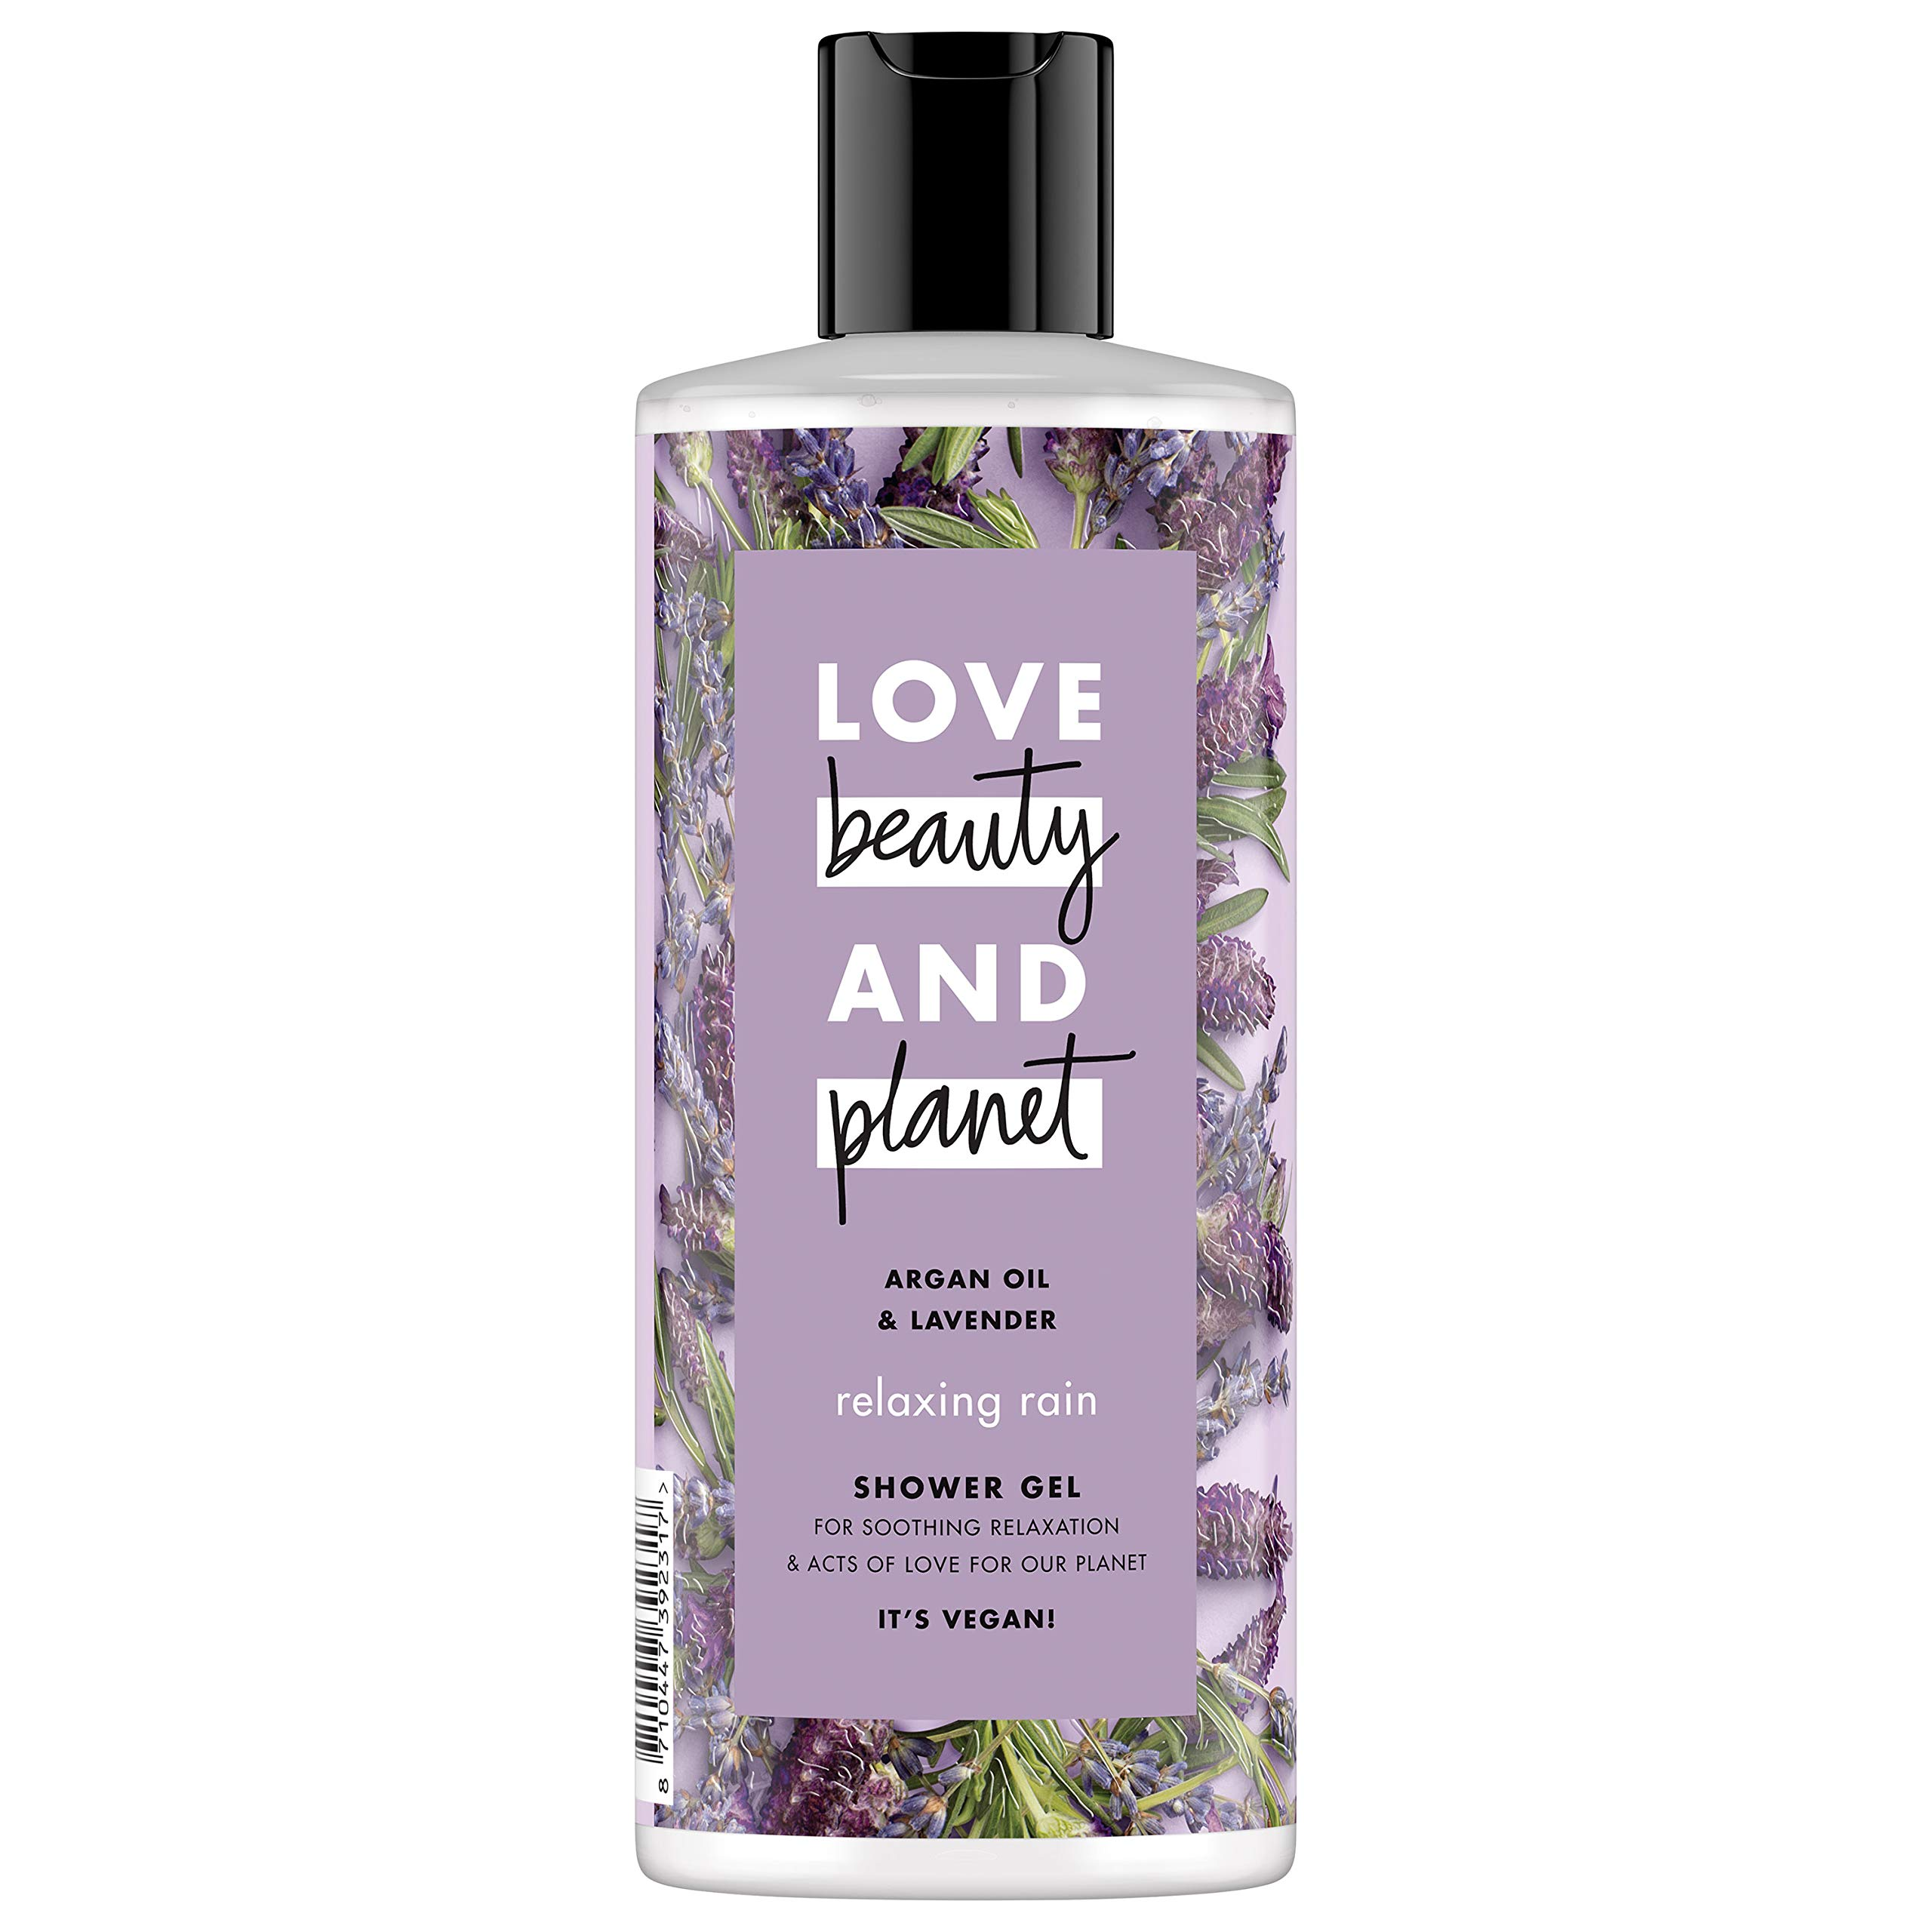 Love Beauty and Planet Argan Oil and Lavender Shower Gel Relaxing Rain 500 ml